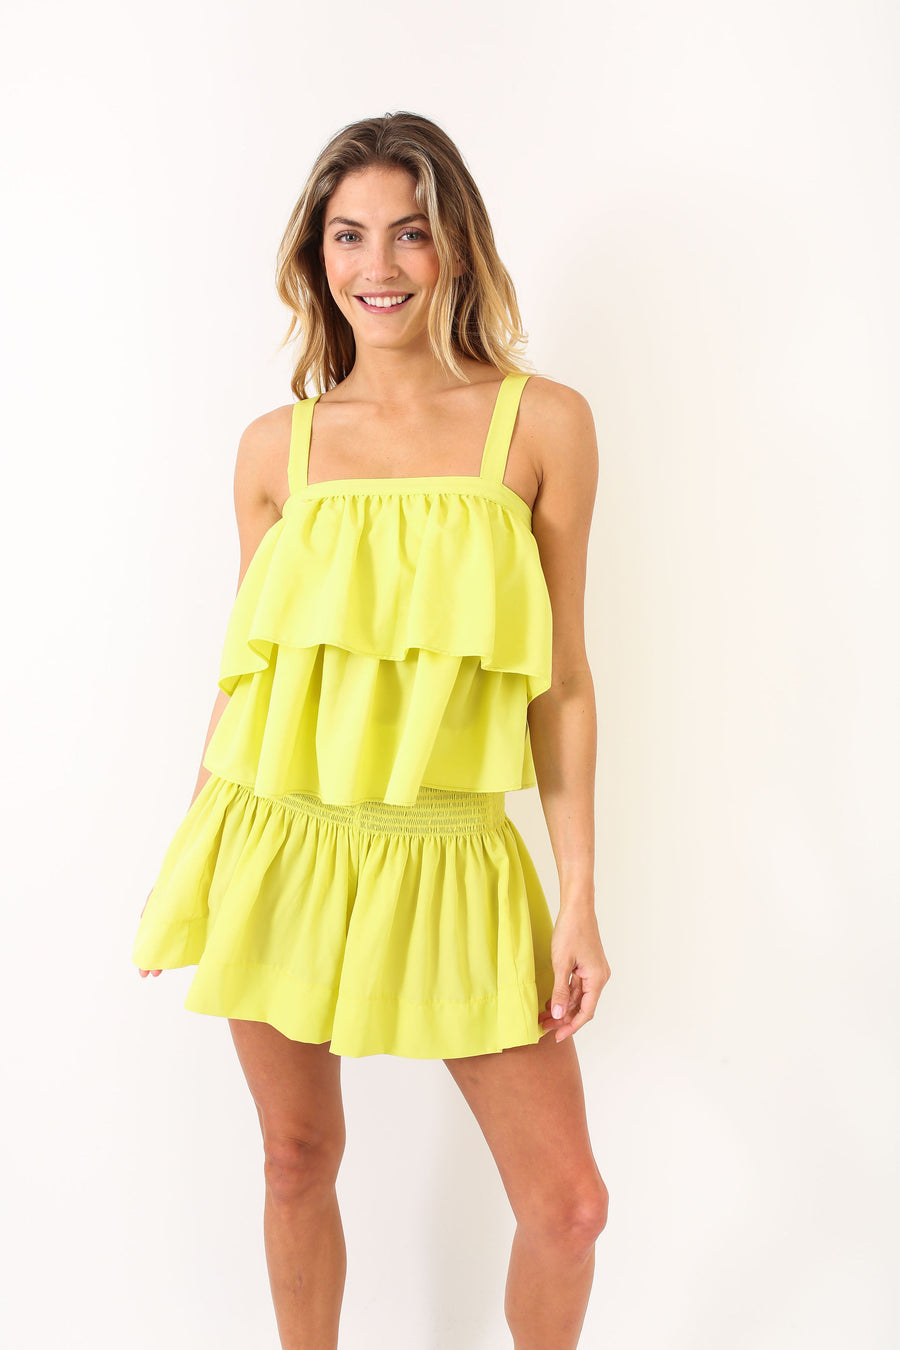 ERICA SKIRT CITRON *LIMITED*EDITION*